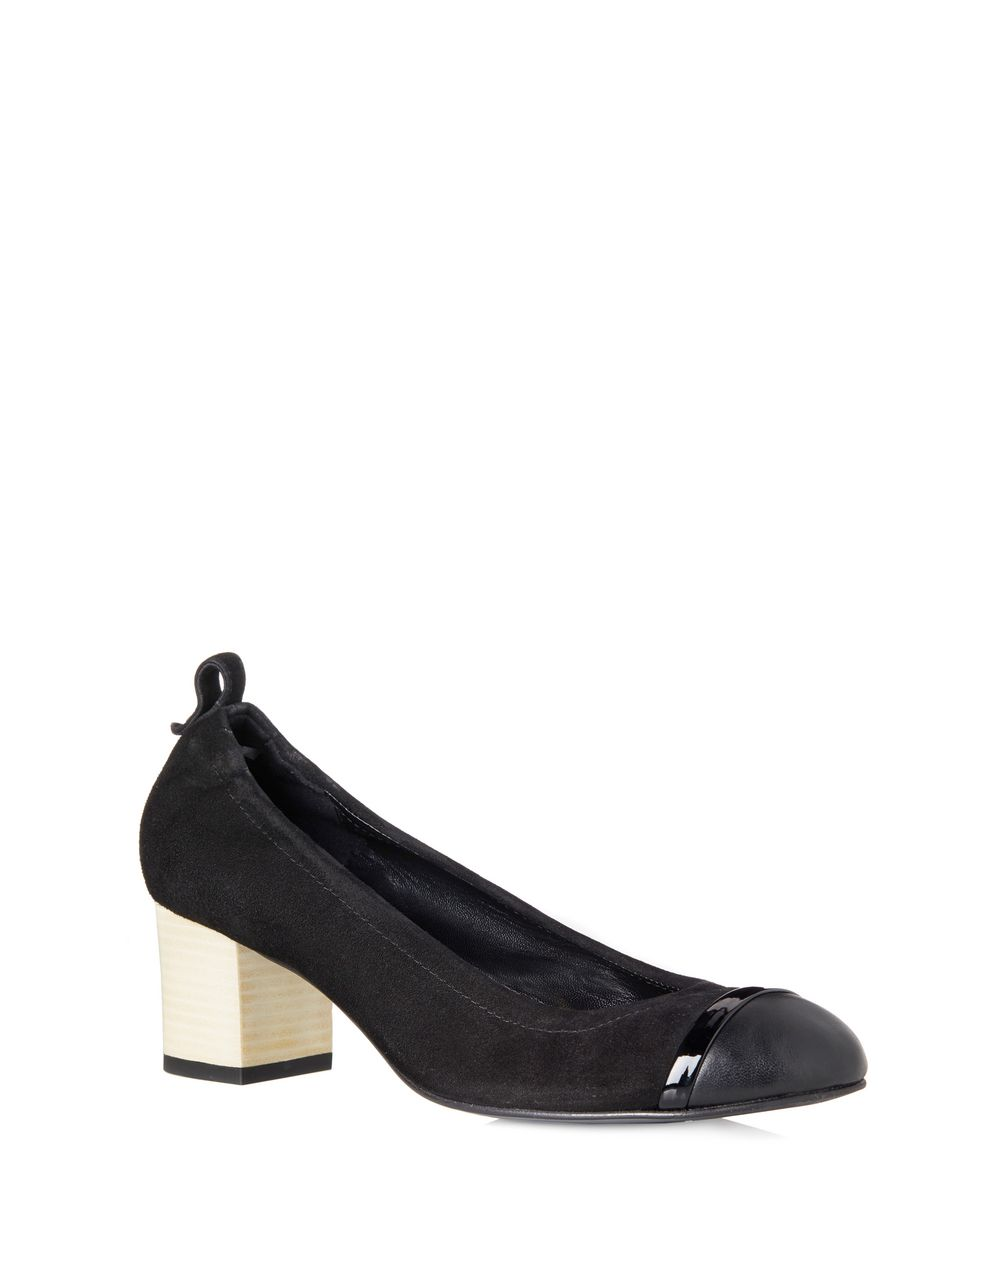 GRAPHIC CUBE PUMP - Lanvin